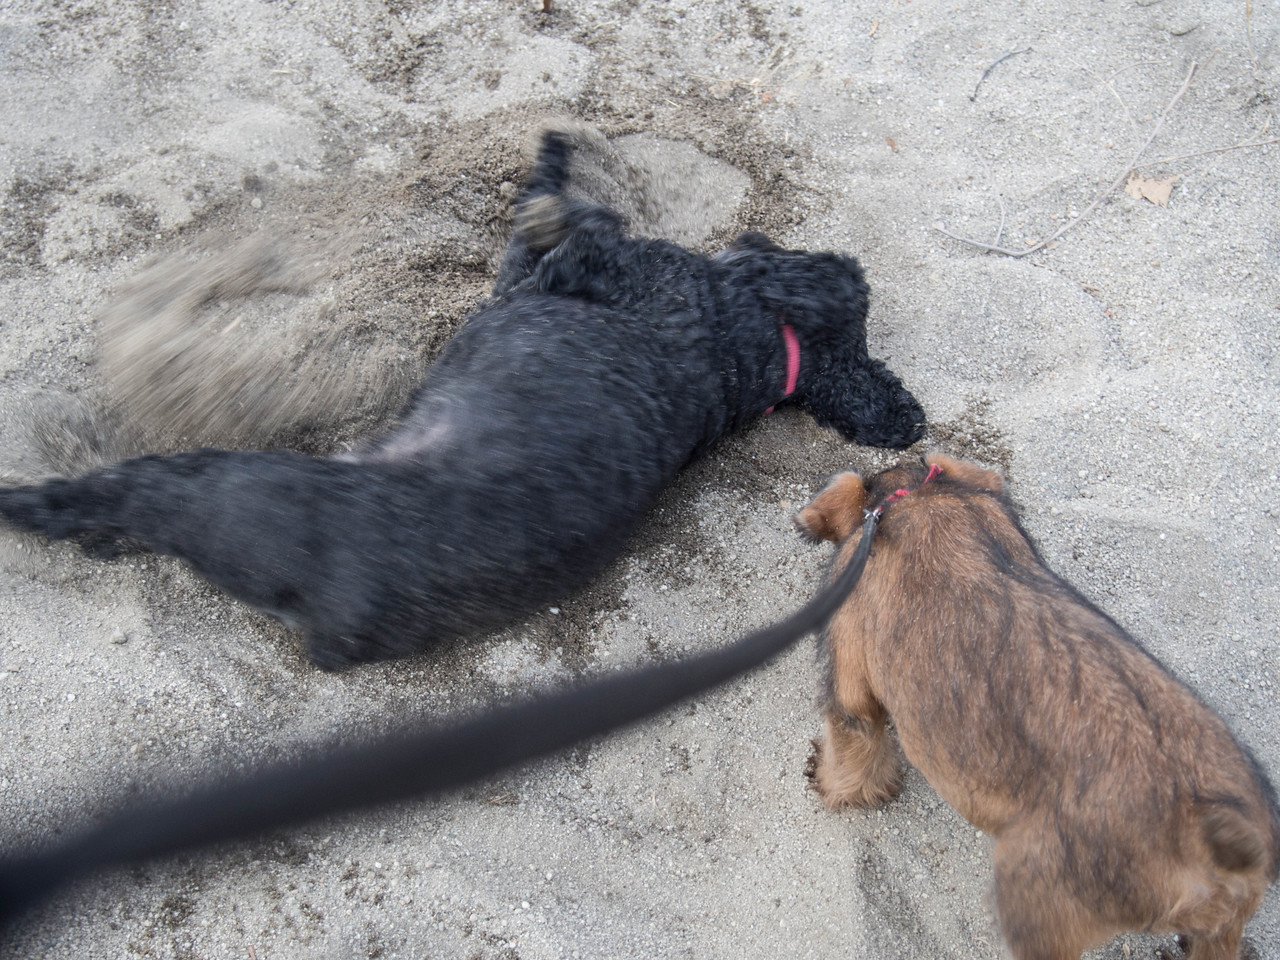 Duffy digging one of her typical holes in the sand.  Jessica is interested.